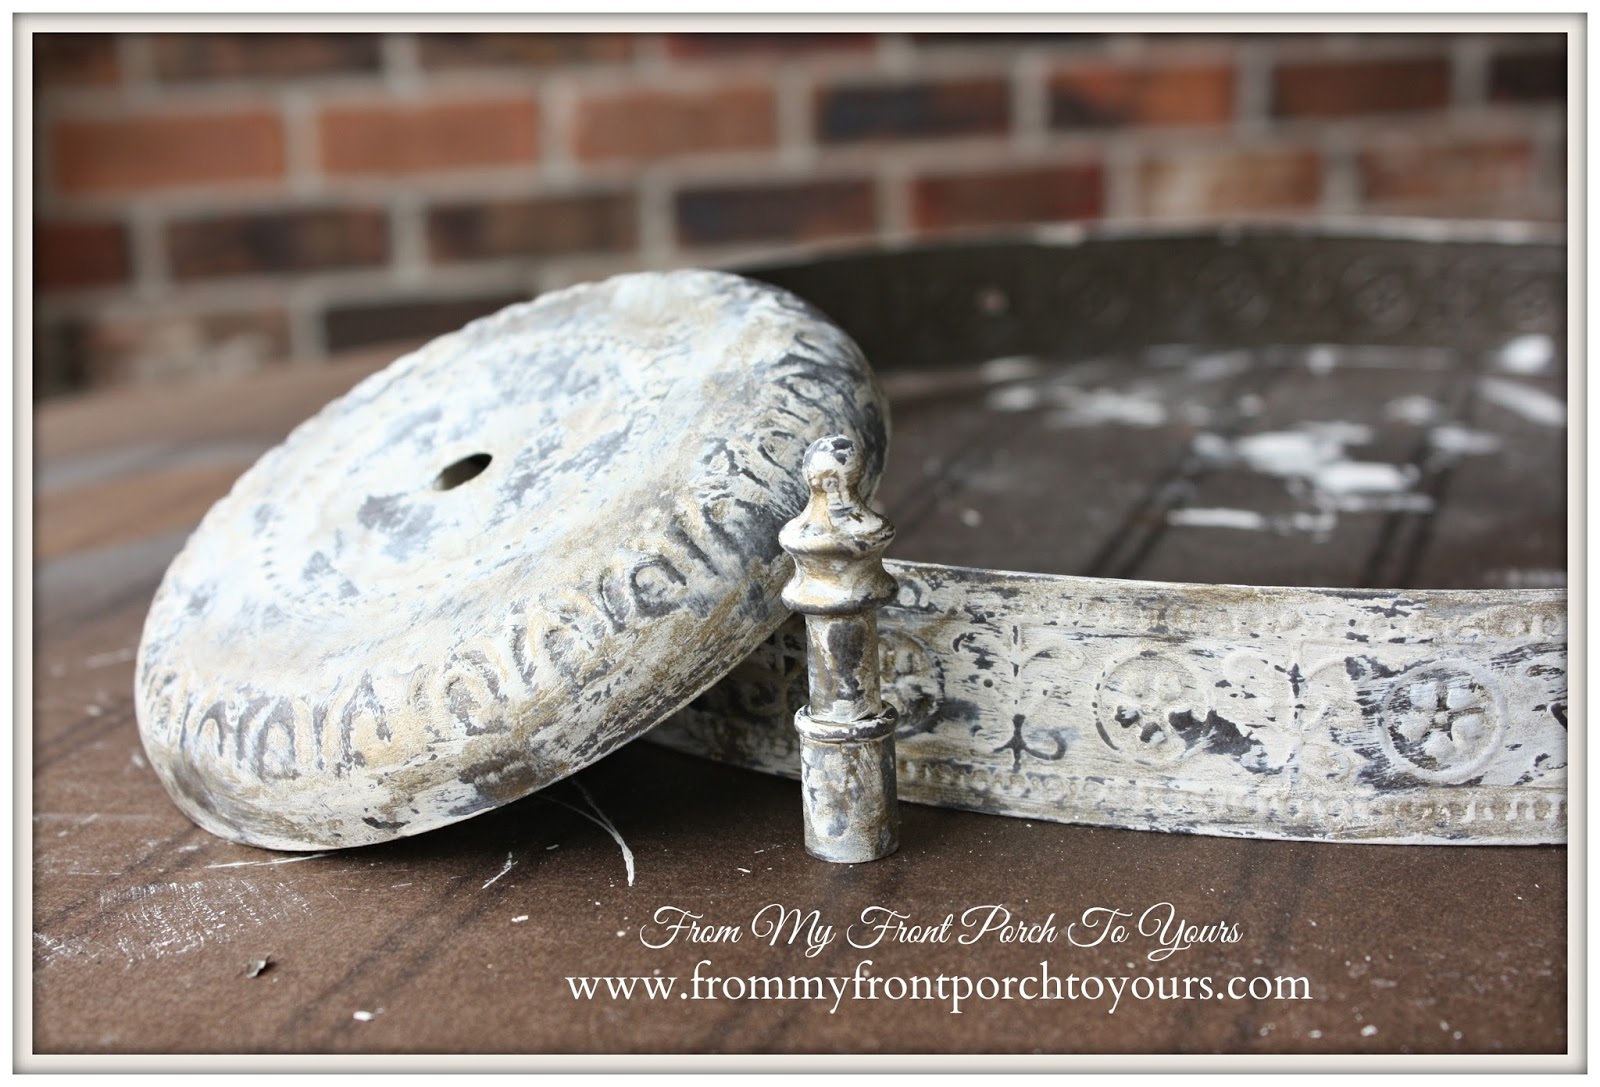 Industrial Farmhouse Light-Custom Painted Light Fixture- From My Front Porch To Yours